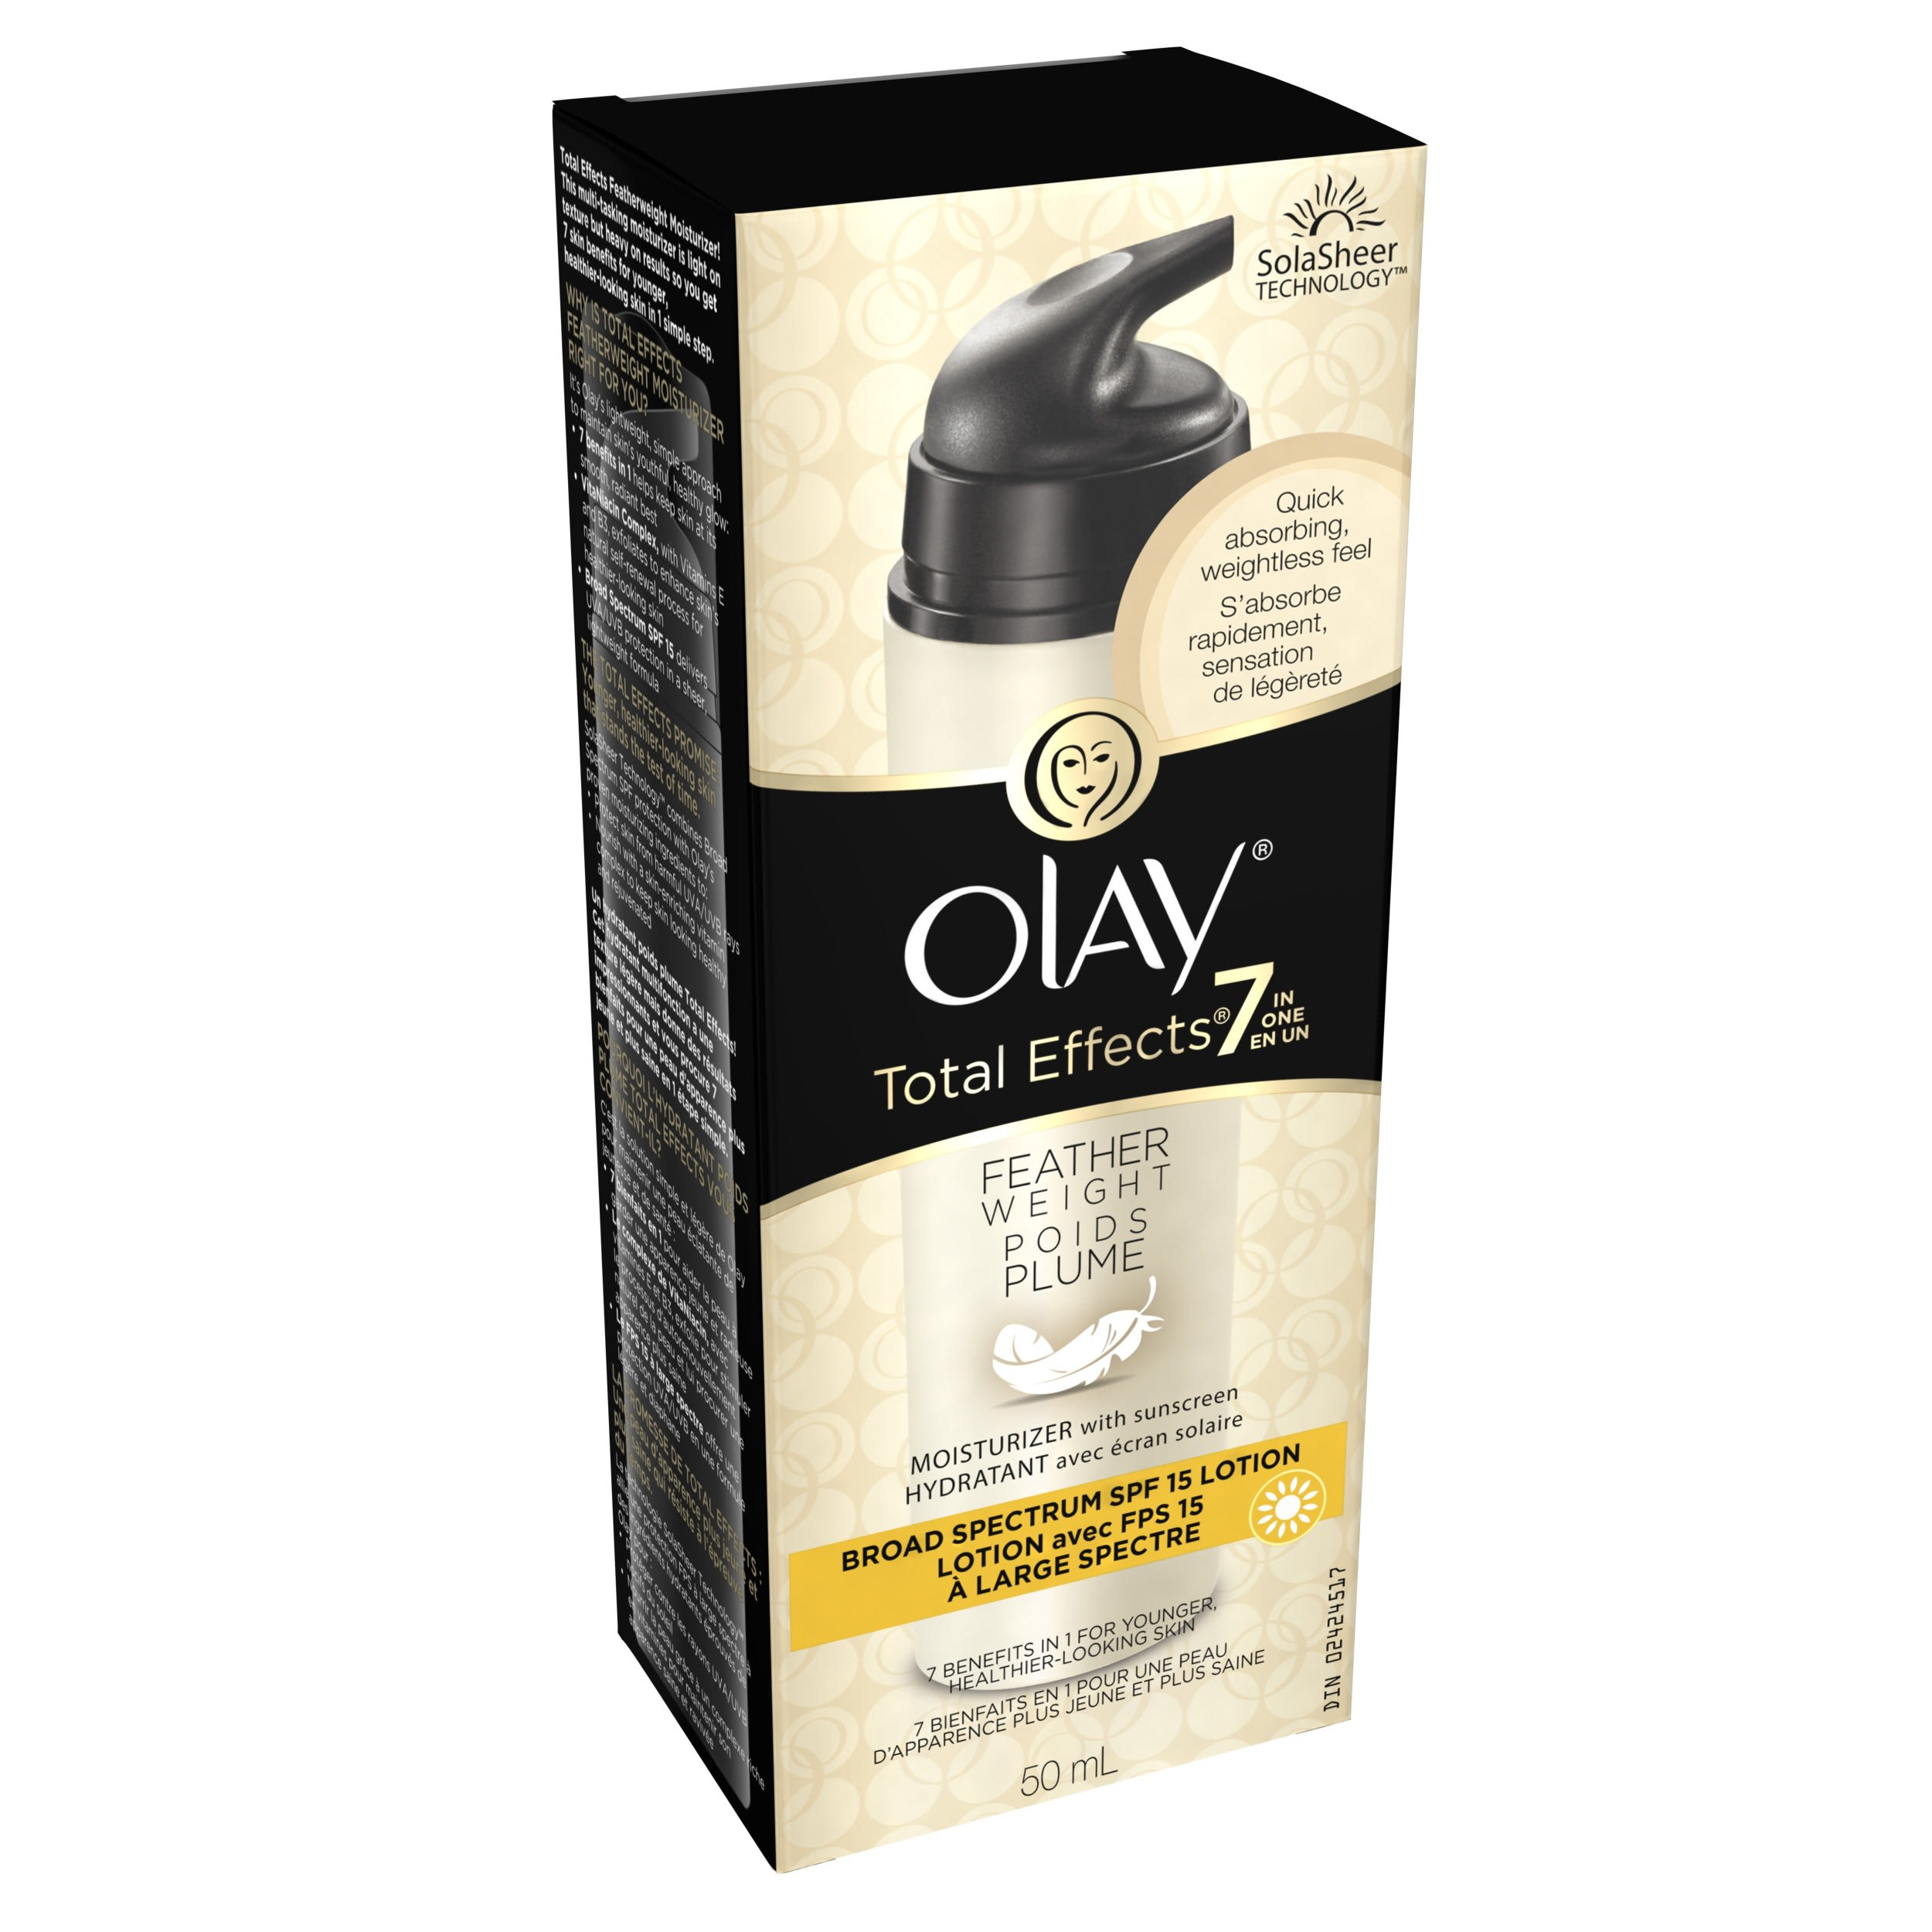 Olay Total Effects Feather Weight Moisturizer with SPF 15